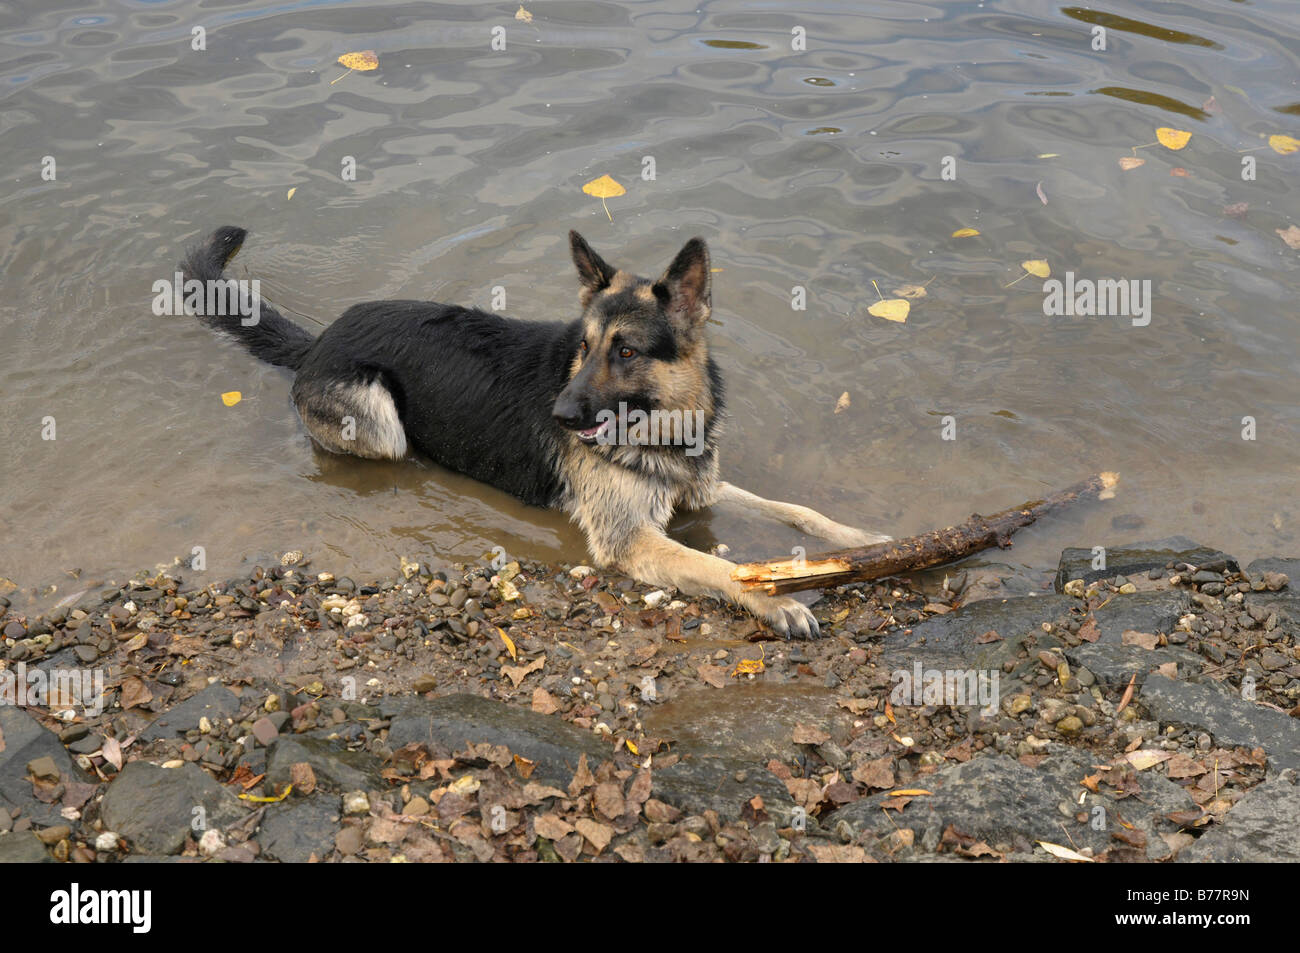 German Shepherd dog with a large branch on a riverbank - Stock Image